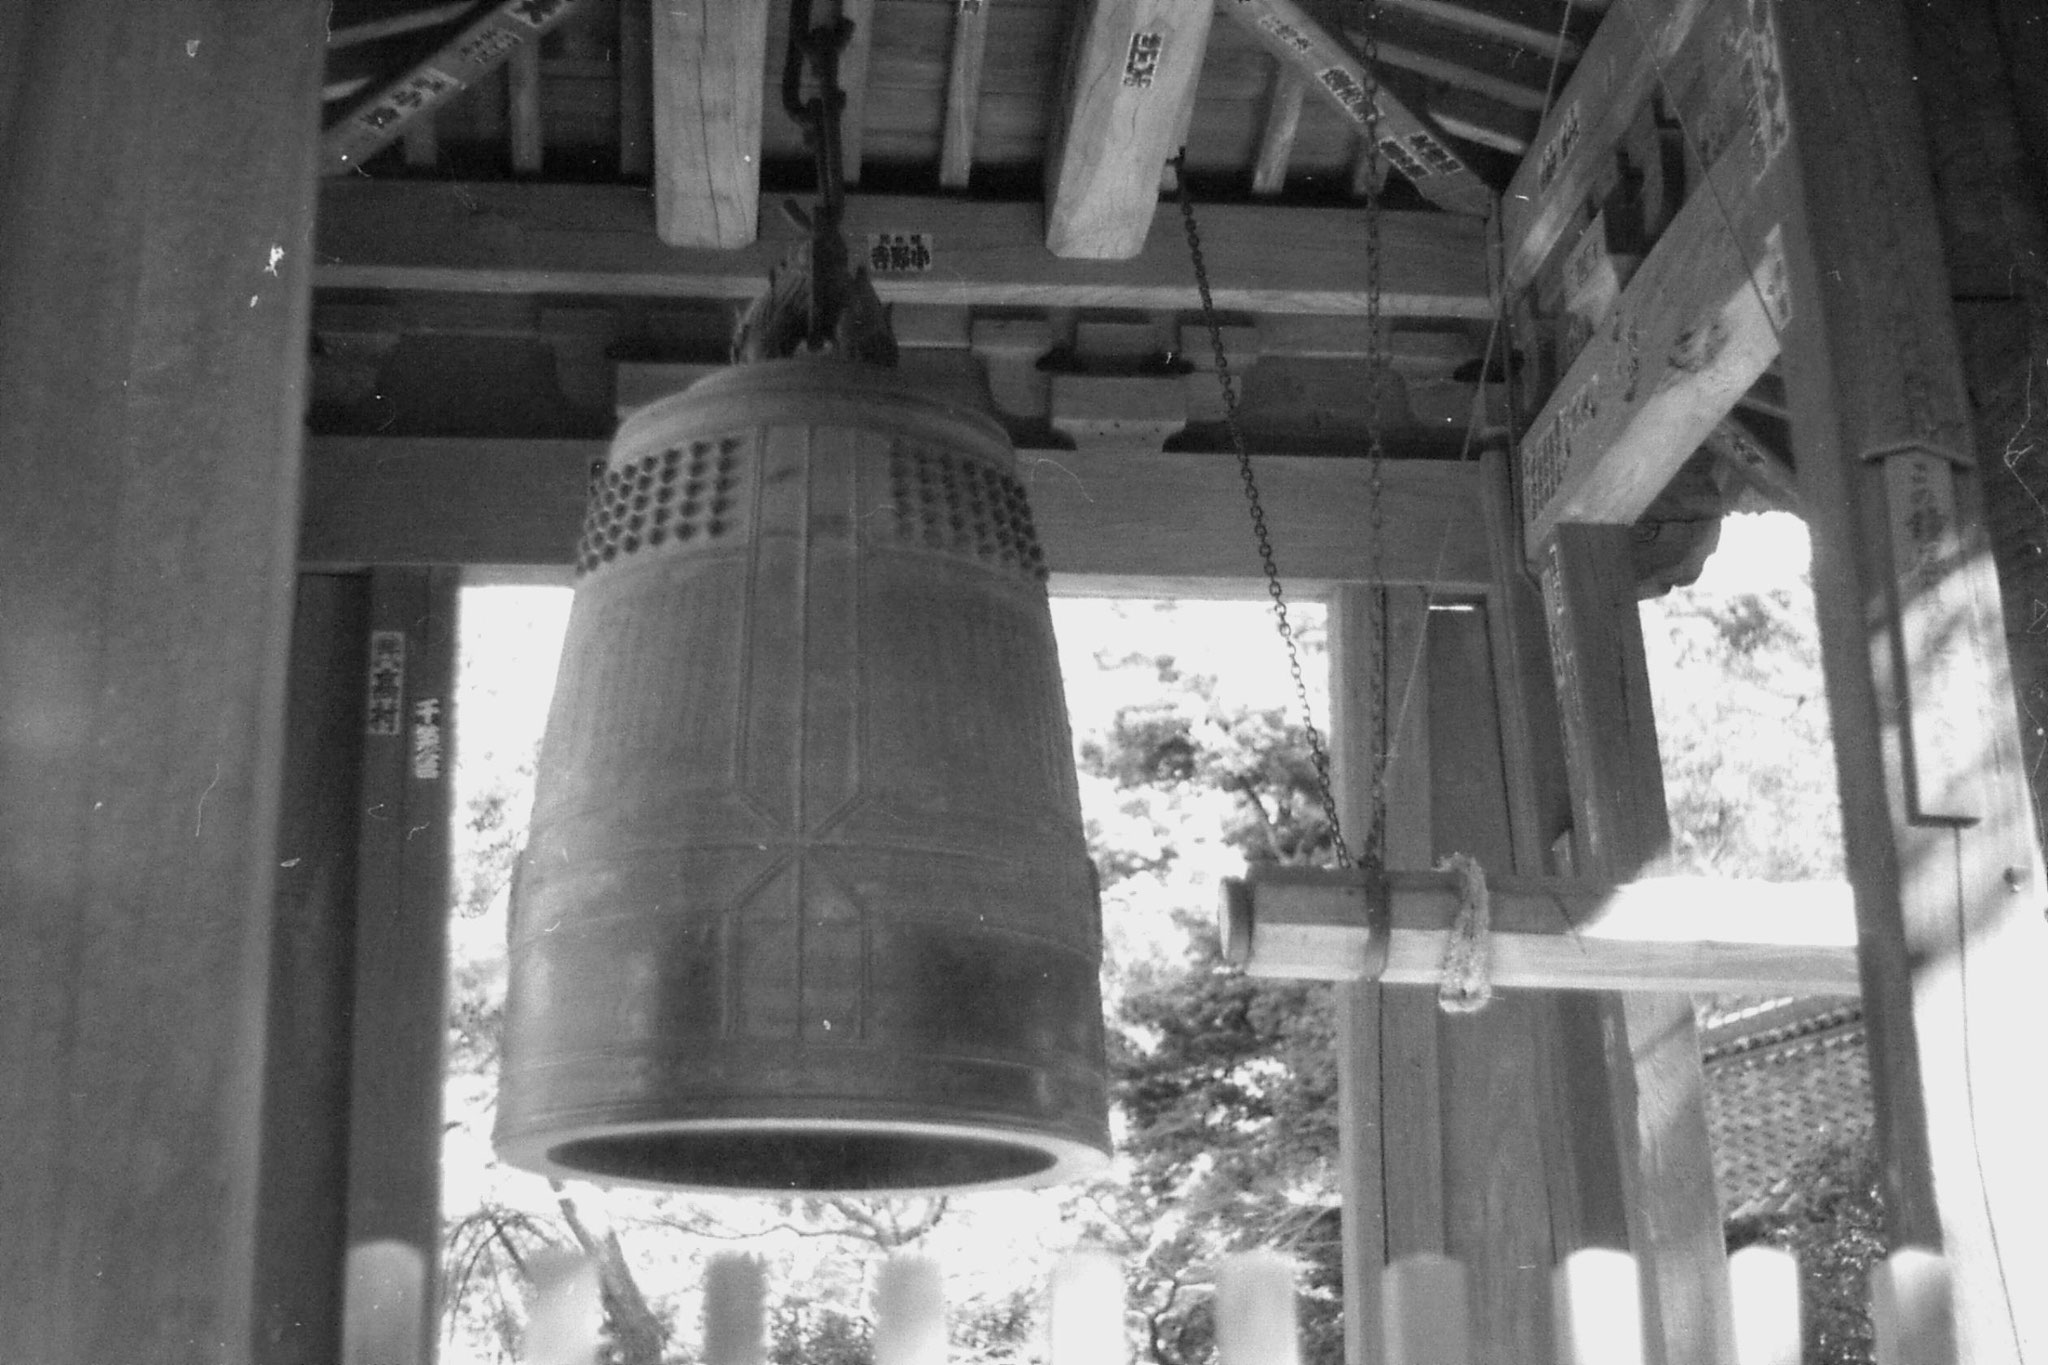 29/1/1989: 32:bell at Kenchoji temple with good luck stickers